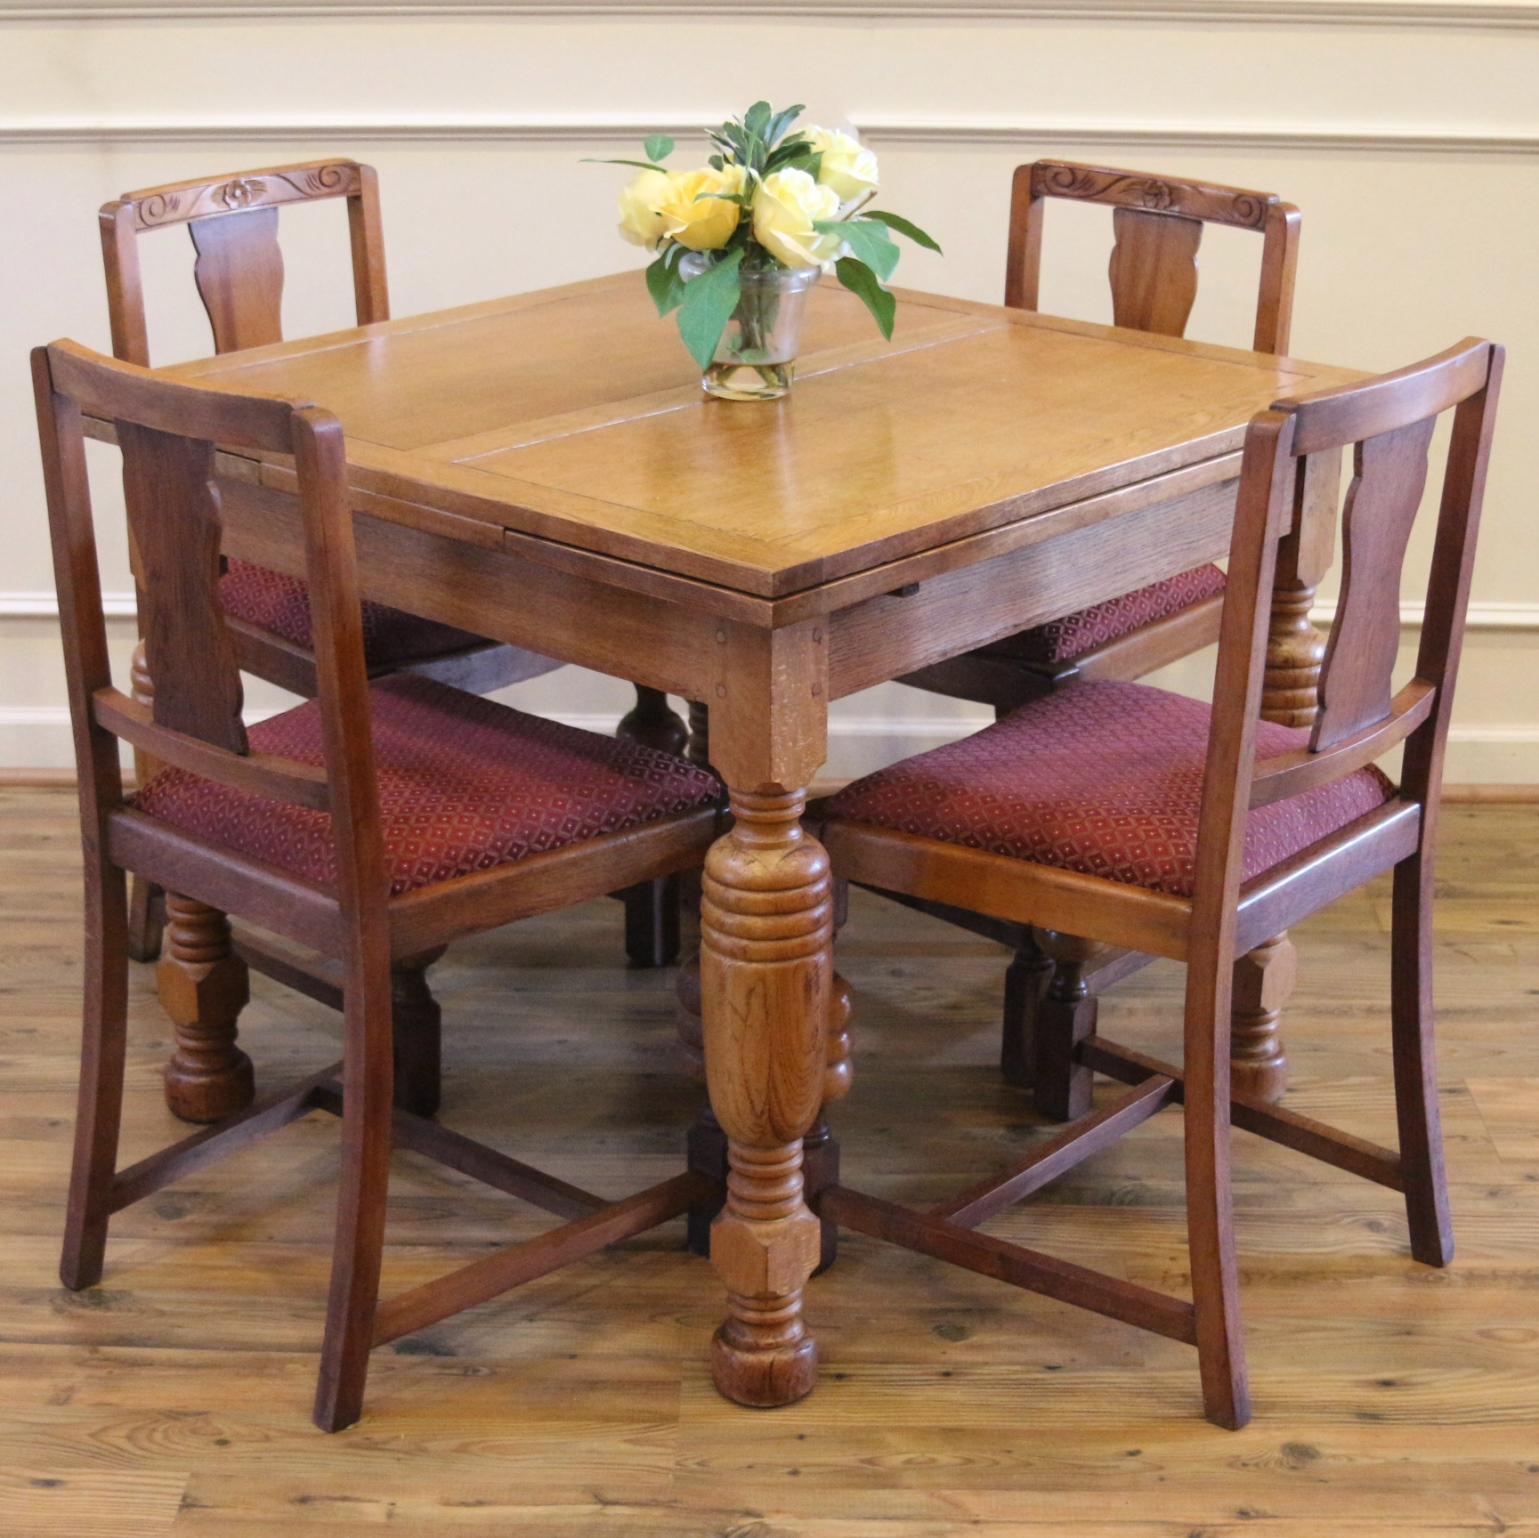 Antique english oak pub table and 4 chairs dining set for for Dining table and chairs sale